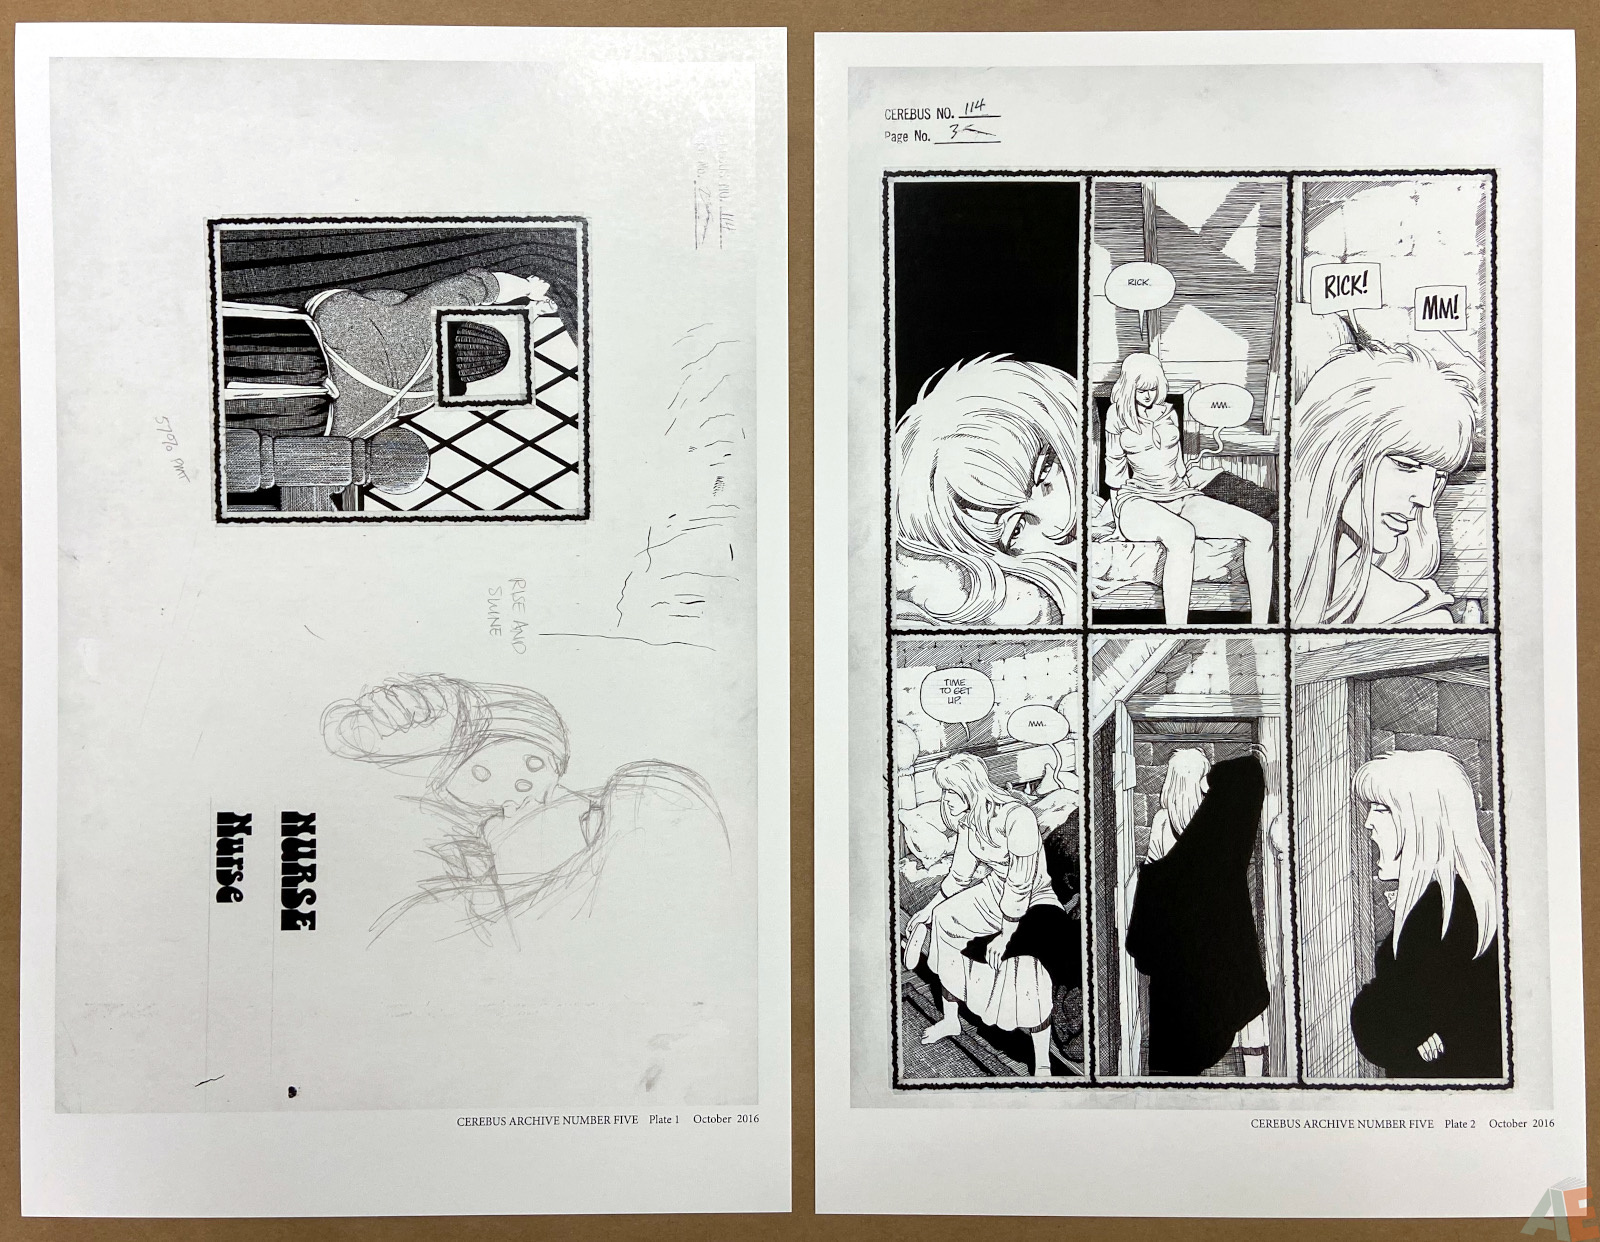 Cerebus Archive Number Five 4